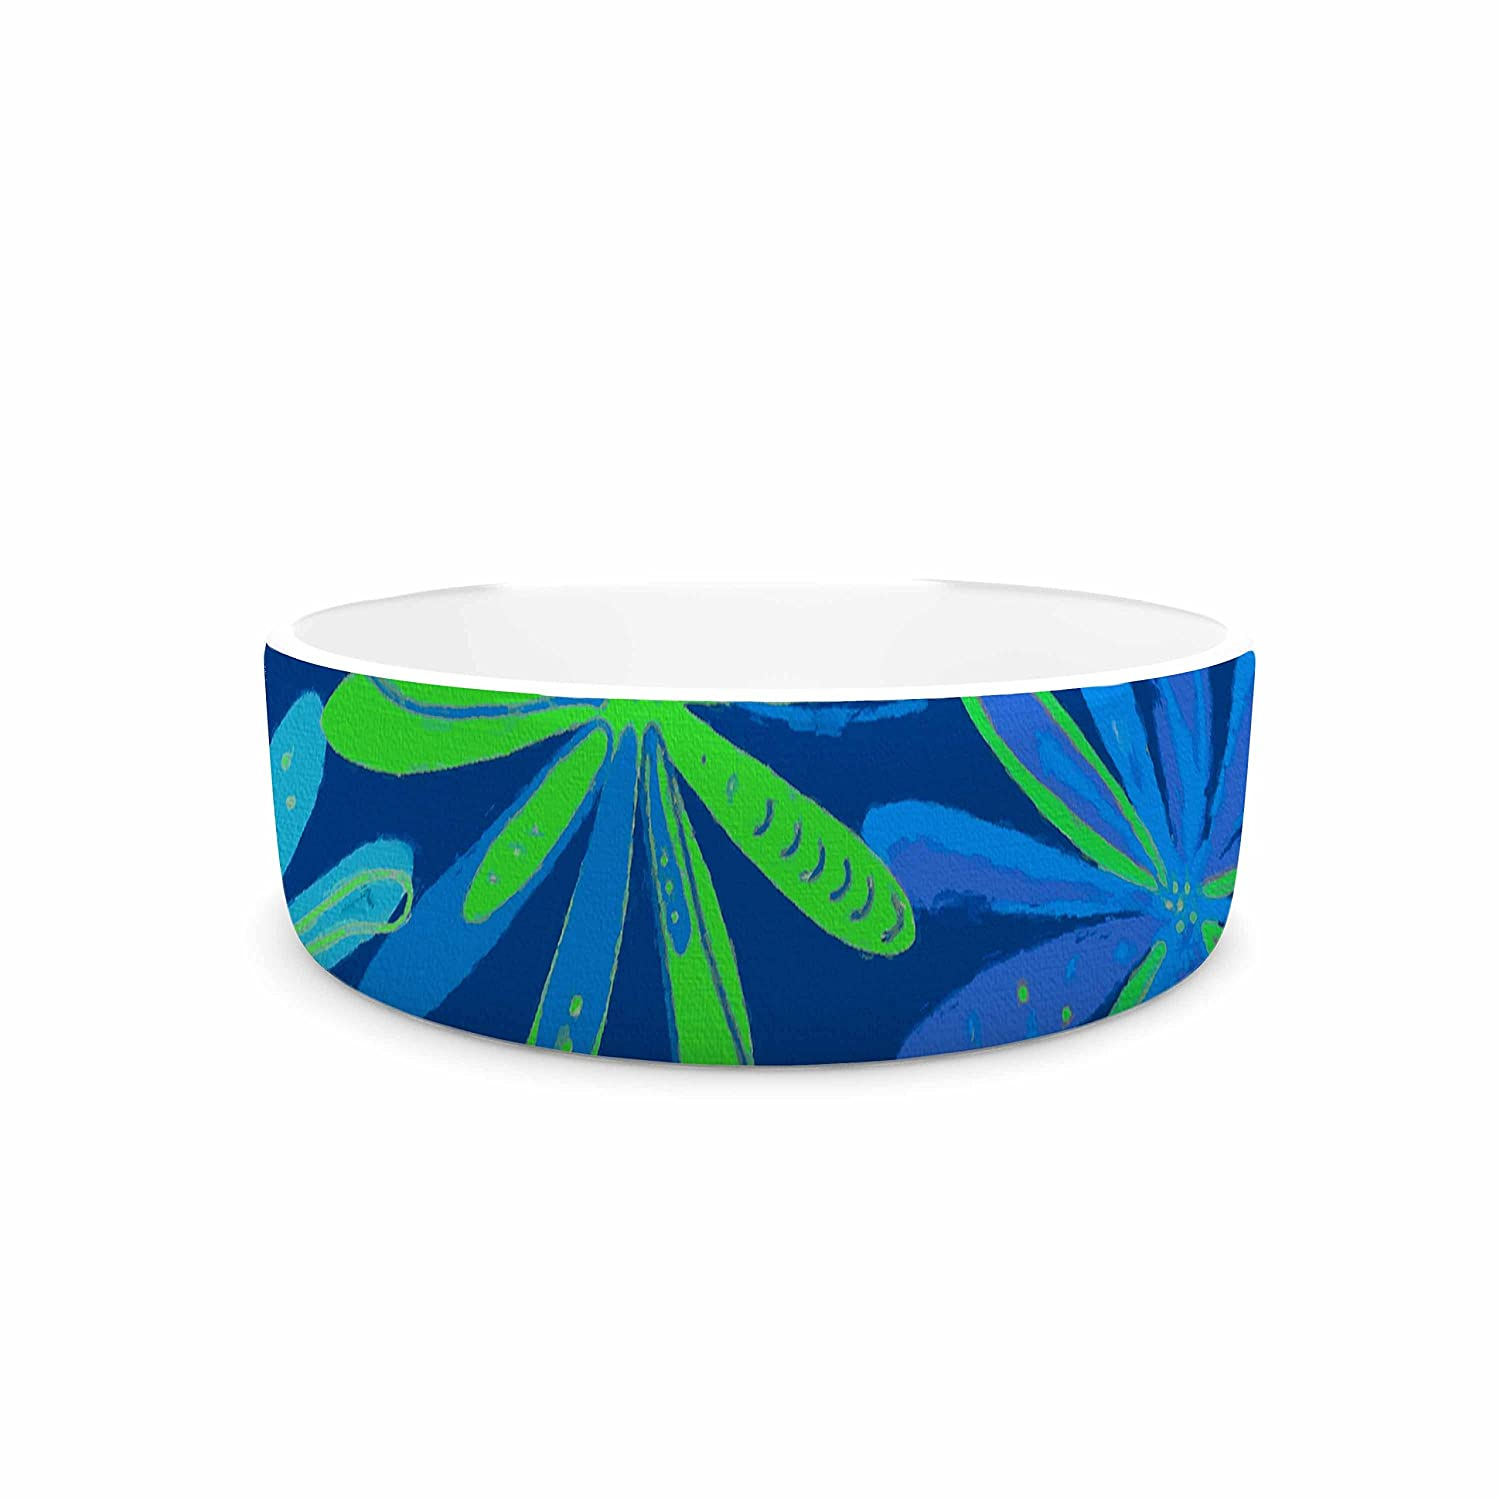 KESS InHouse Cristina Bianco Design Floral Pattern-bluee & Green bluee Green Illustration Pet Bowl, 7